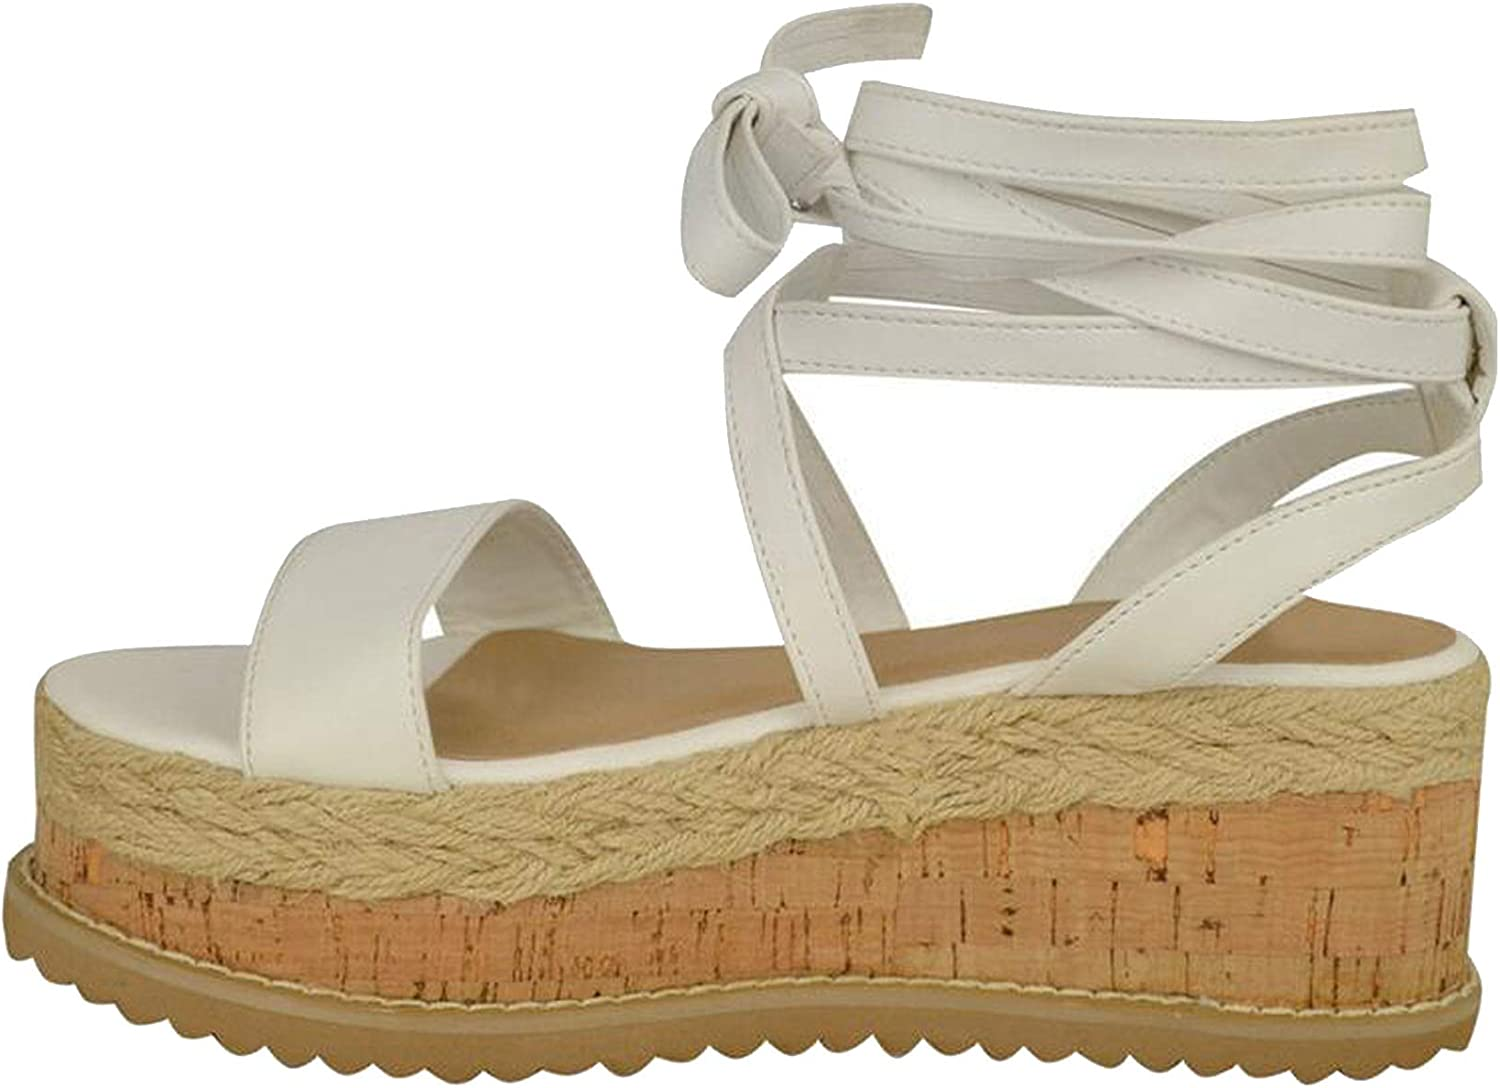 Summer White Wedge Espadrilles Women Open Toe Gladiator Casual Lace up Women Platform Sandals